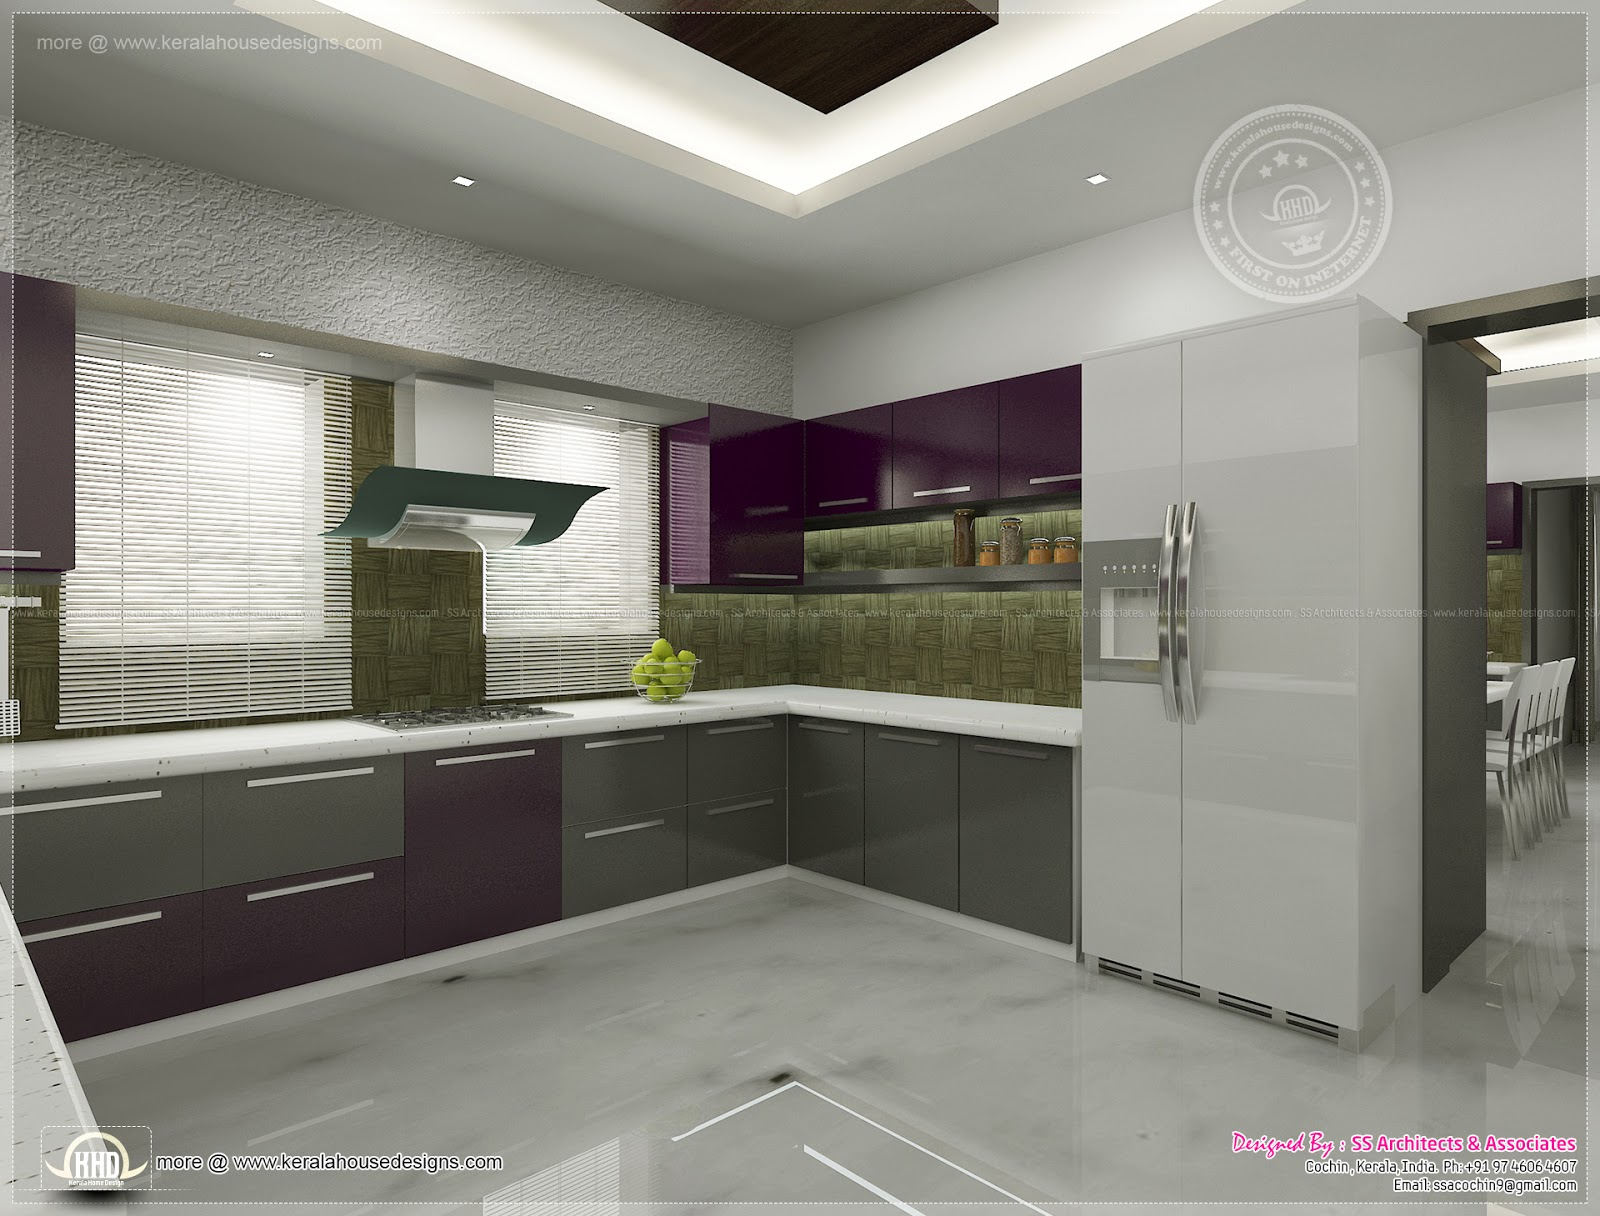 Kitchen interior views by ss architects cochin home for Kitchen interior ideas